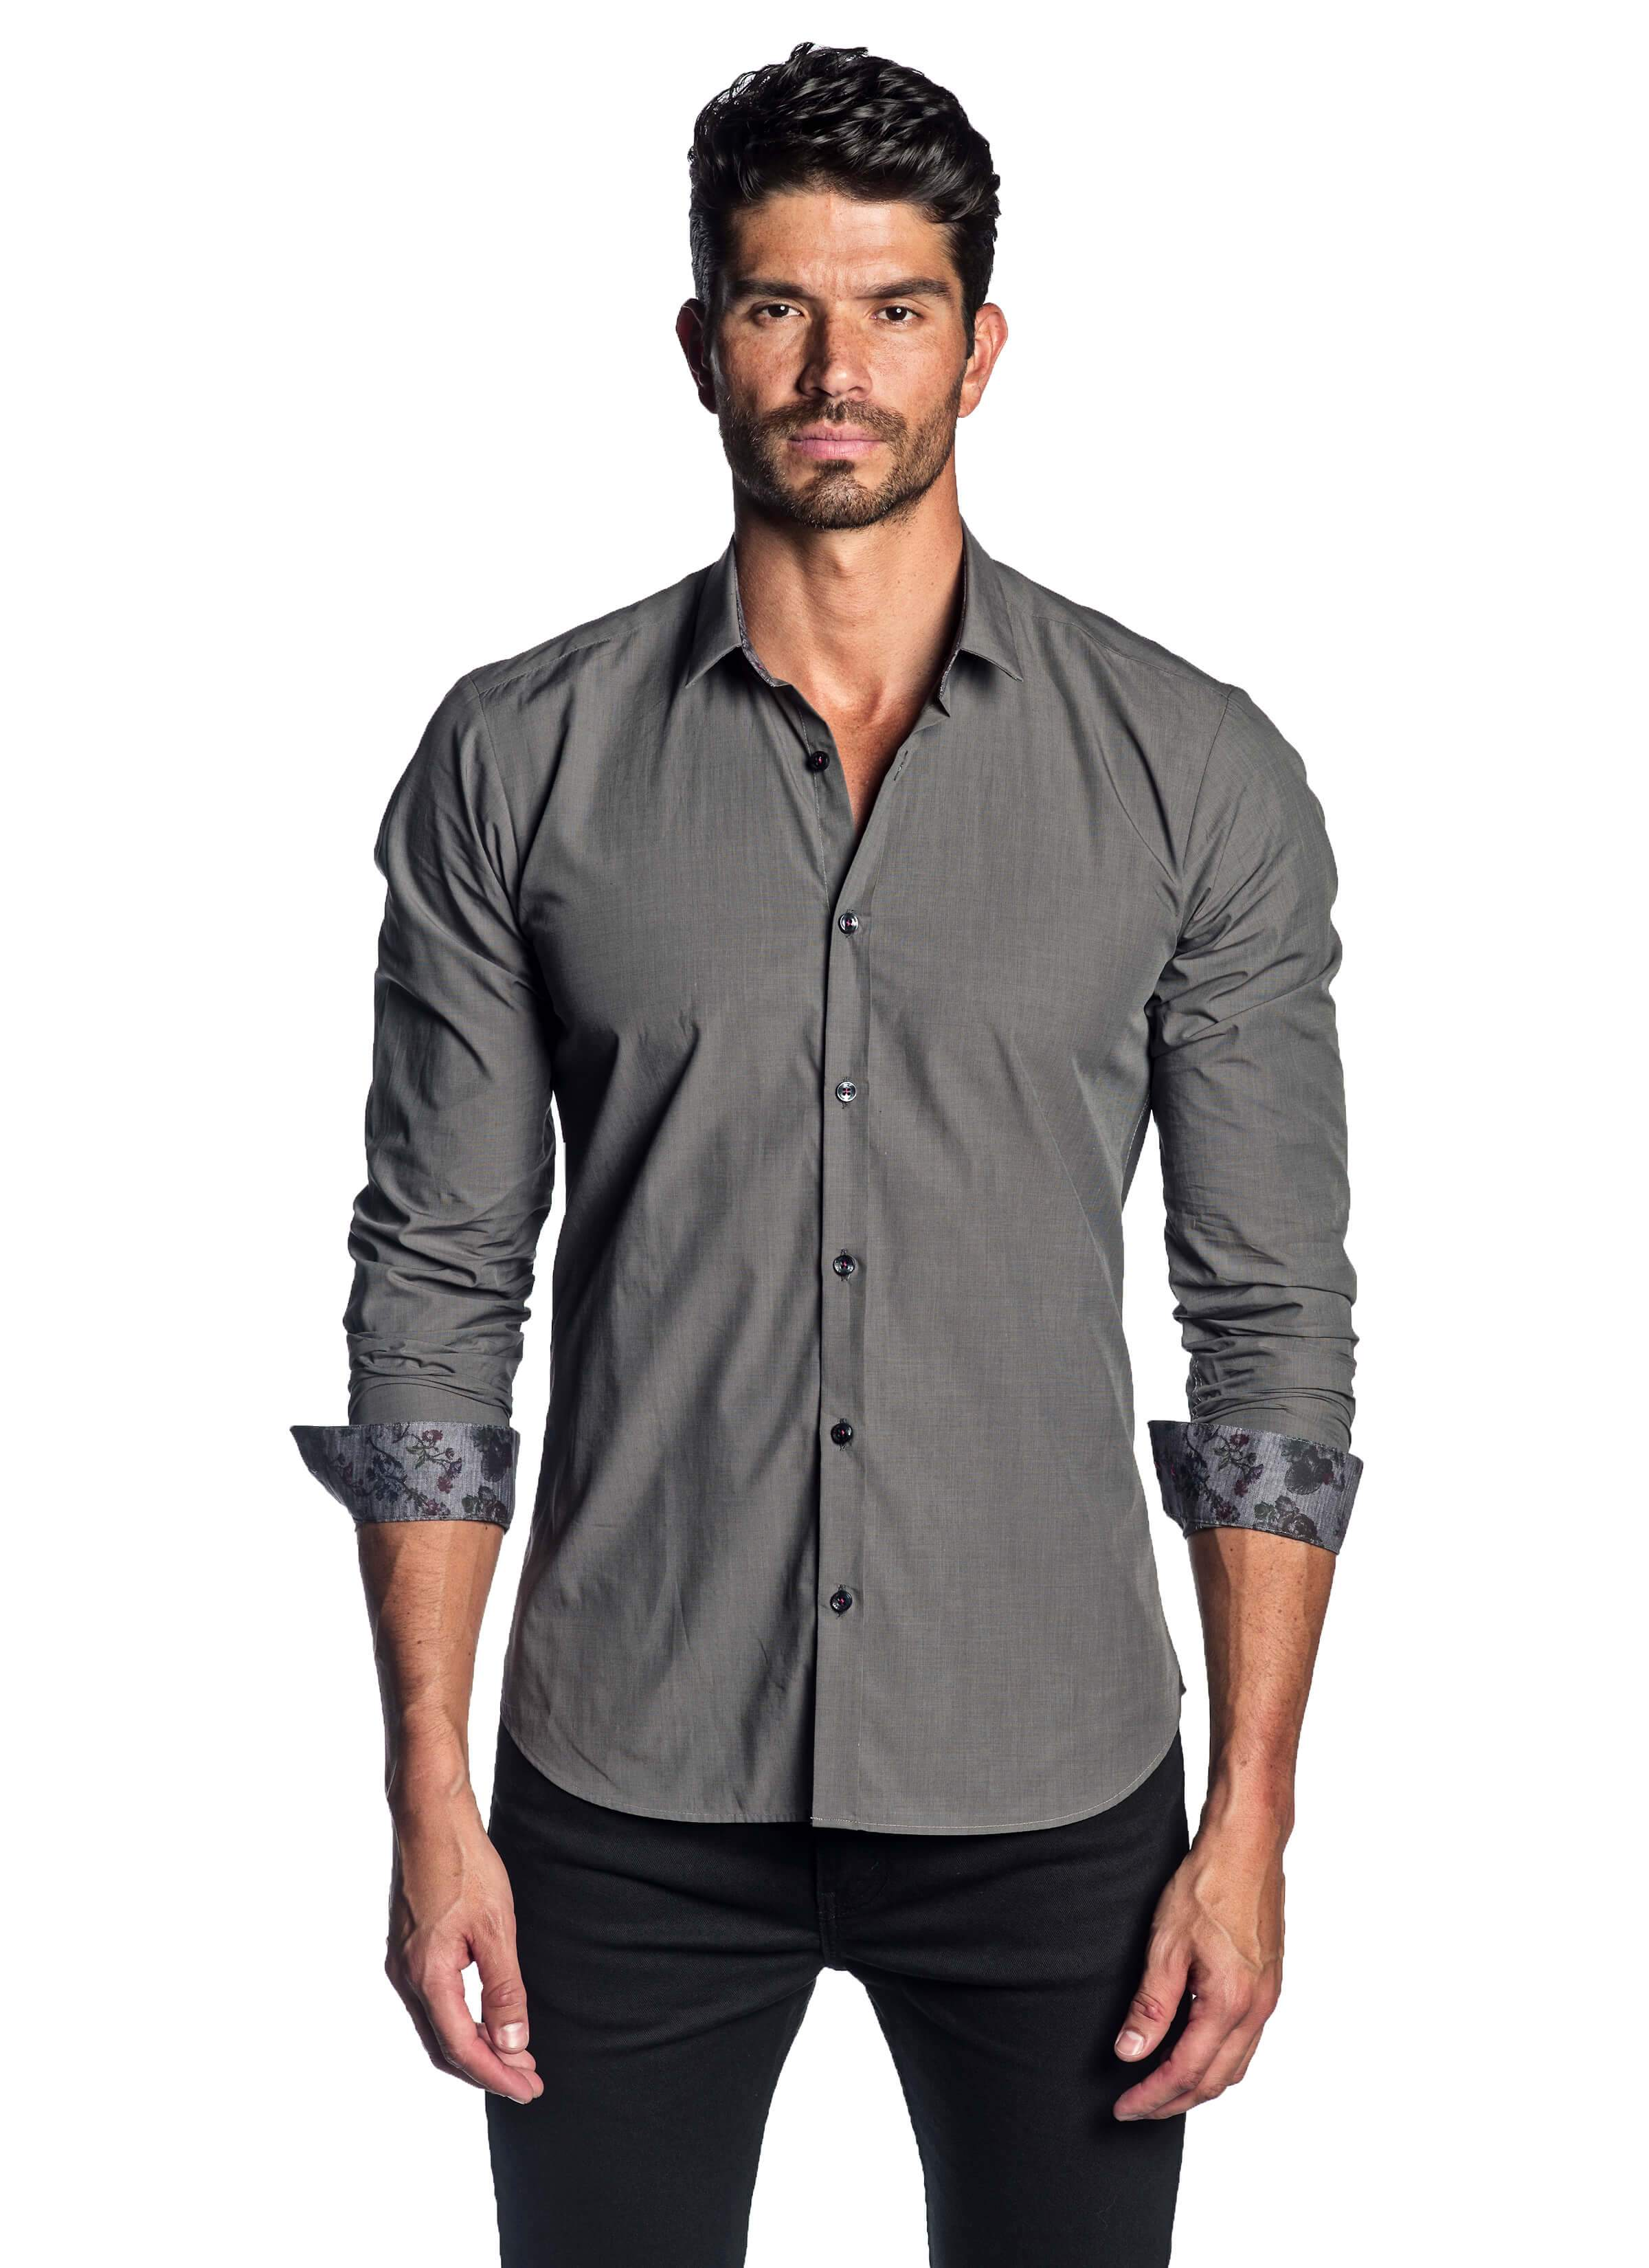 Men's Charcoal Solid Shirt with Floral Trim AH-T-2011